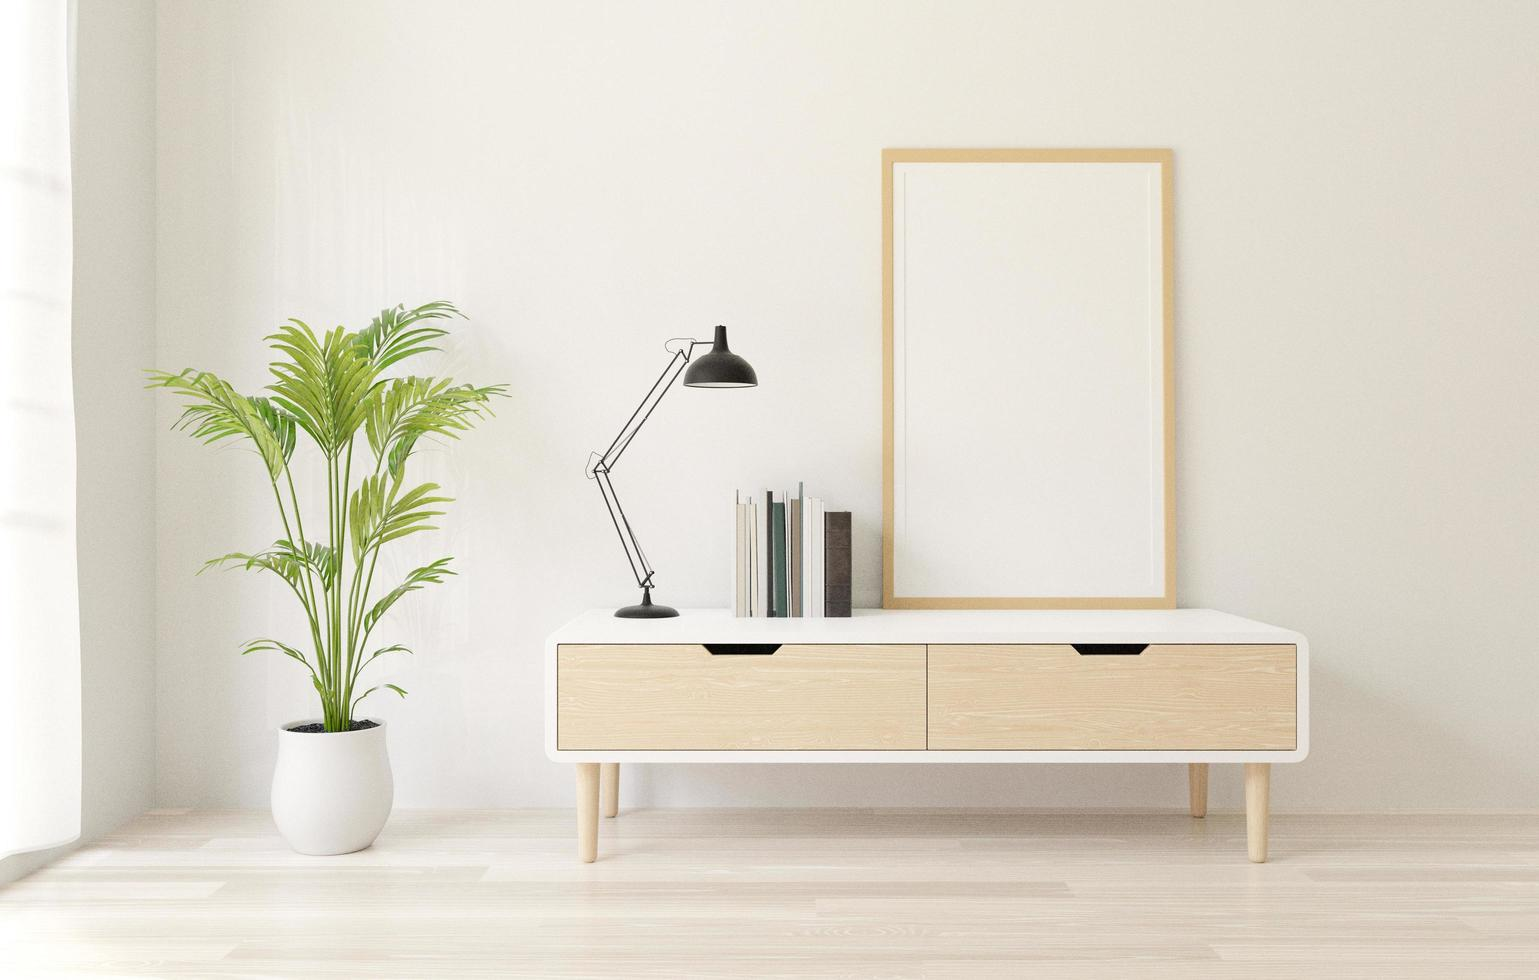 Dresser table with white poster frame, books, lamp, and plant photo